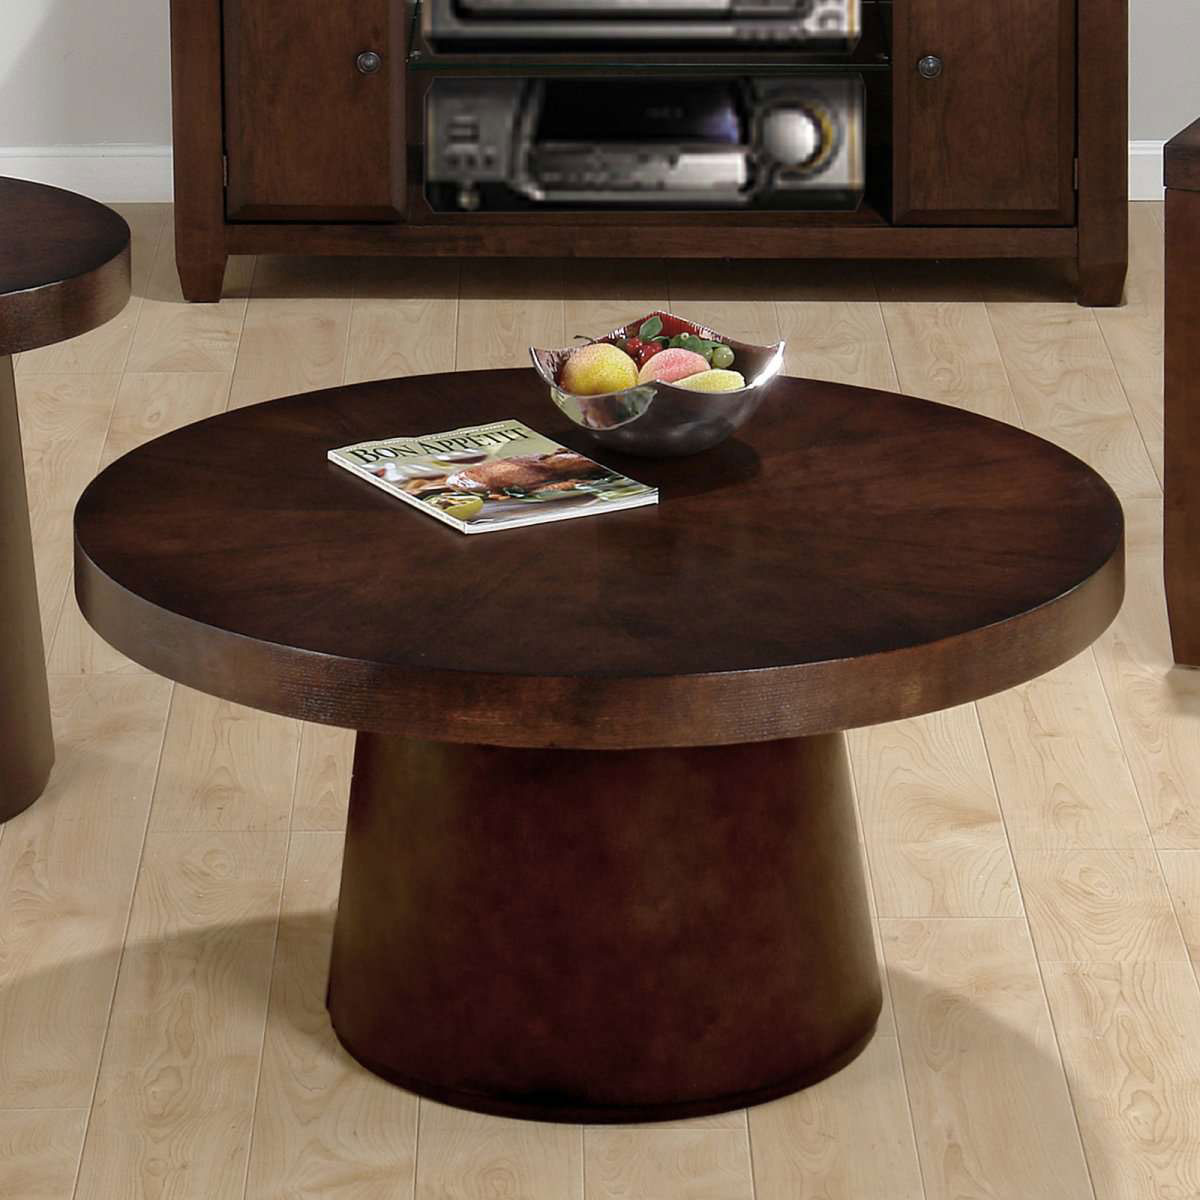 Merveilleux Amazing Unique Round Coffee Tables For Small Living